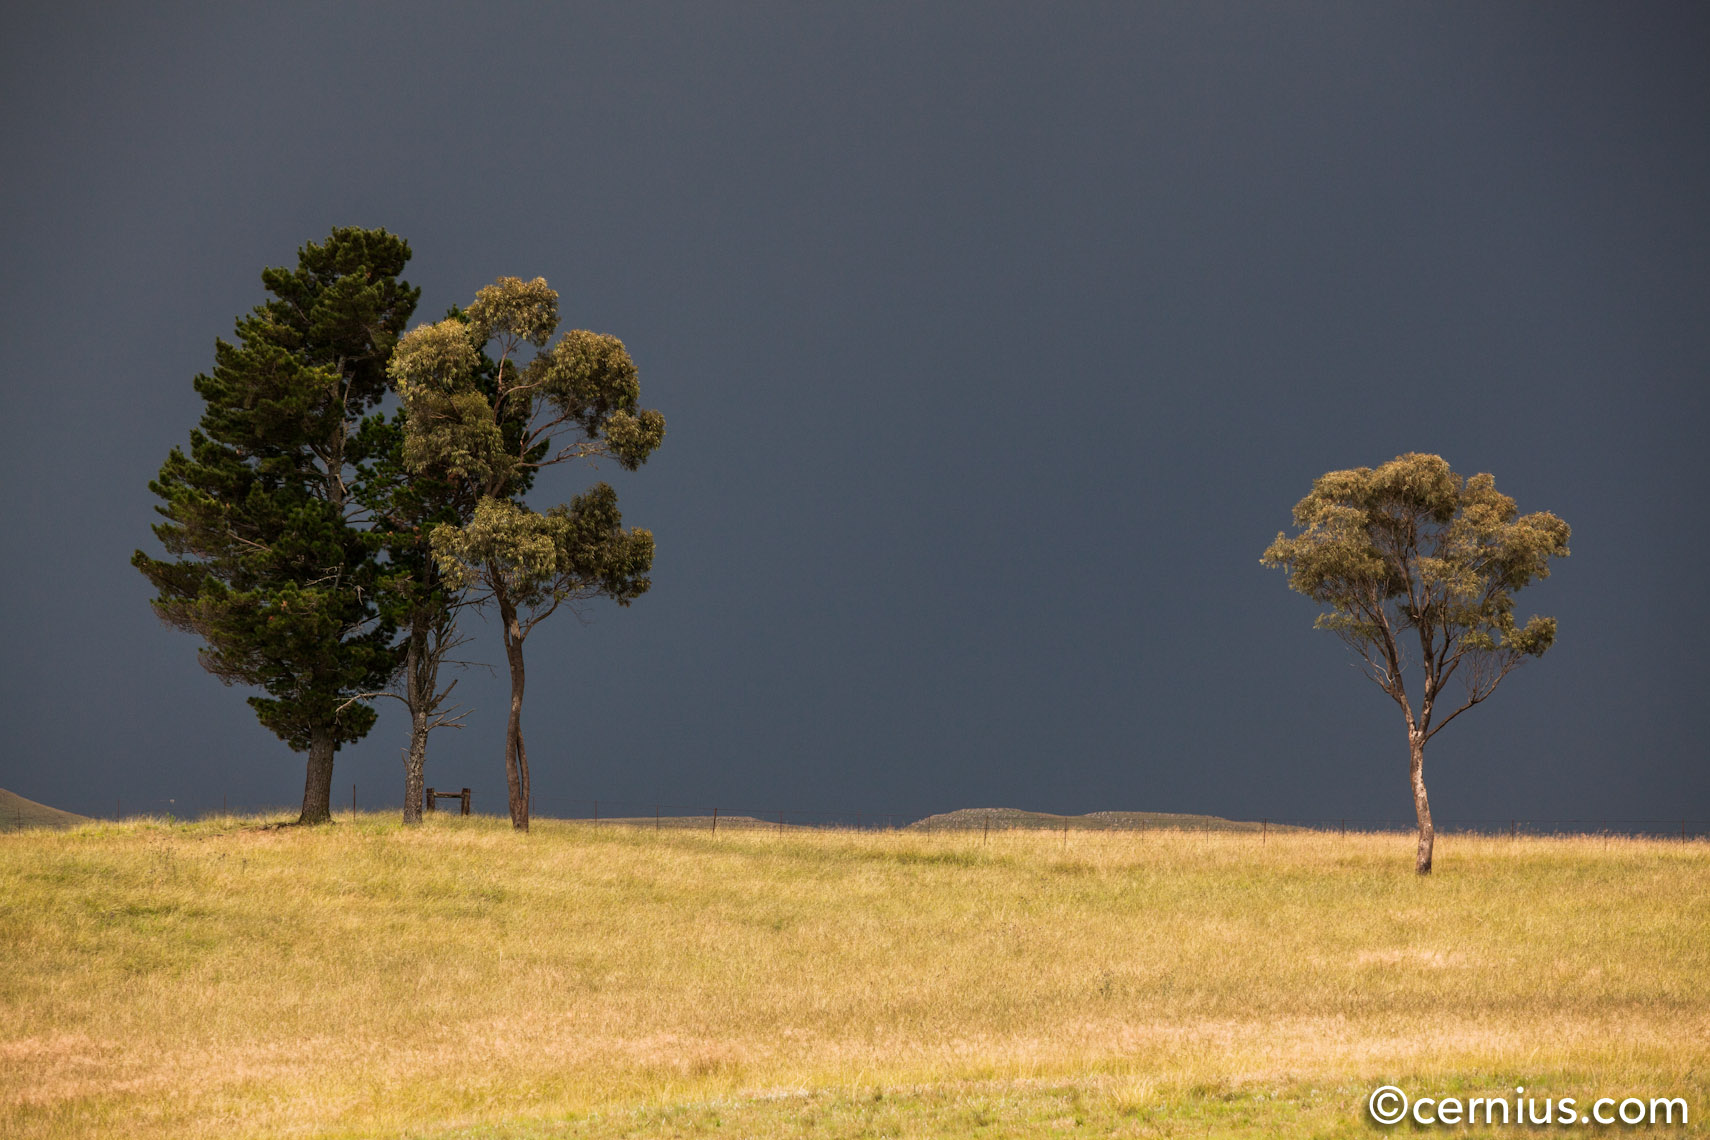 Storm approaching, South Africa | Juozas Cernius